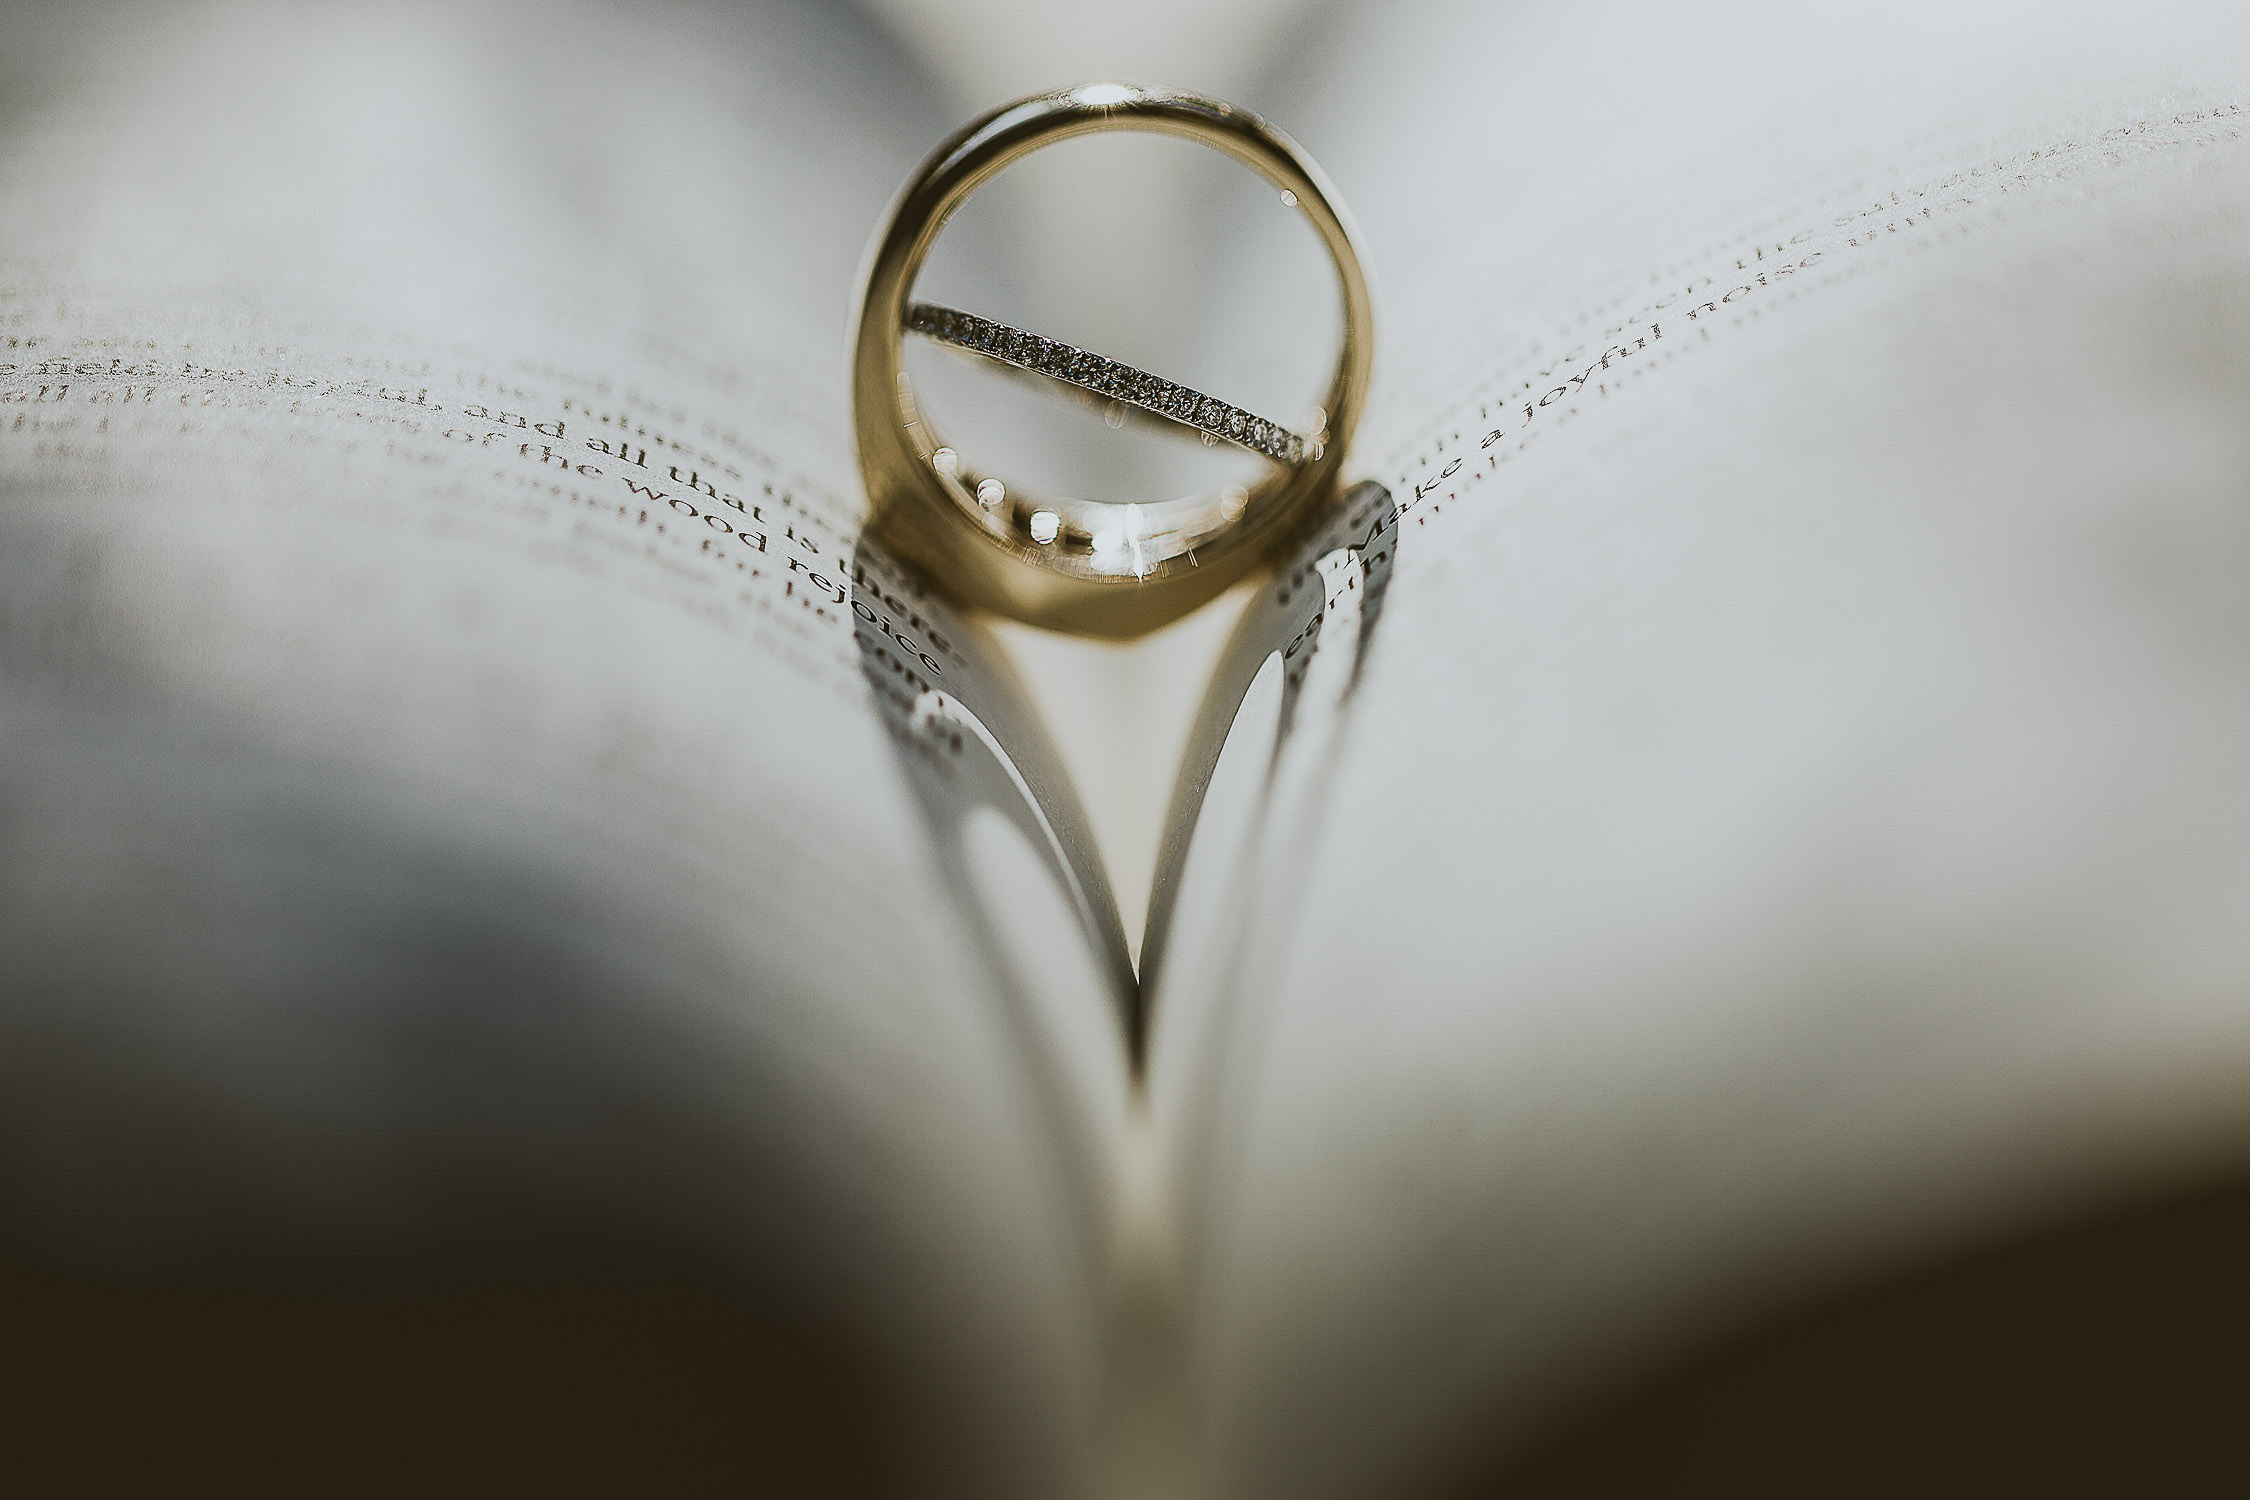 Wedding rings resting in the pages of the bible creating a shadow of a love heart